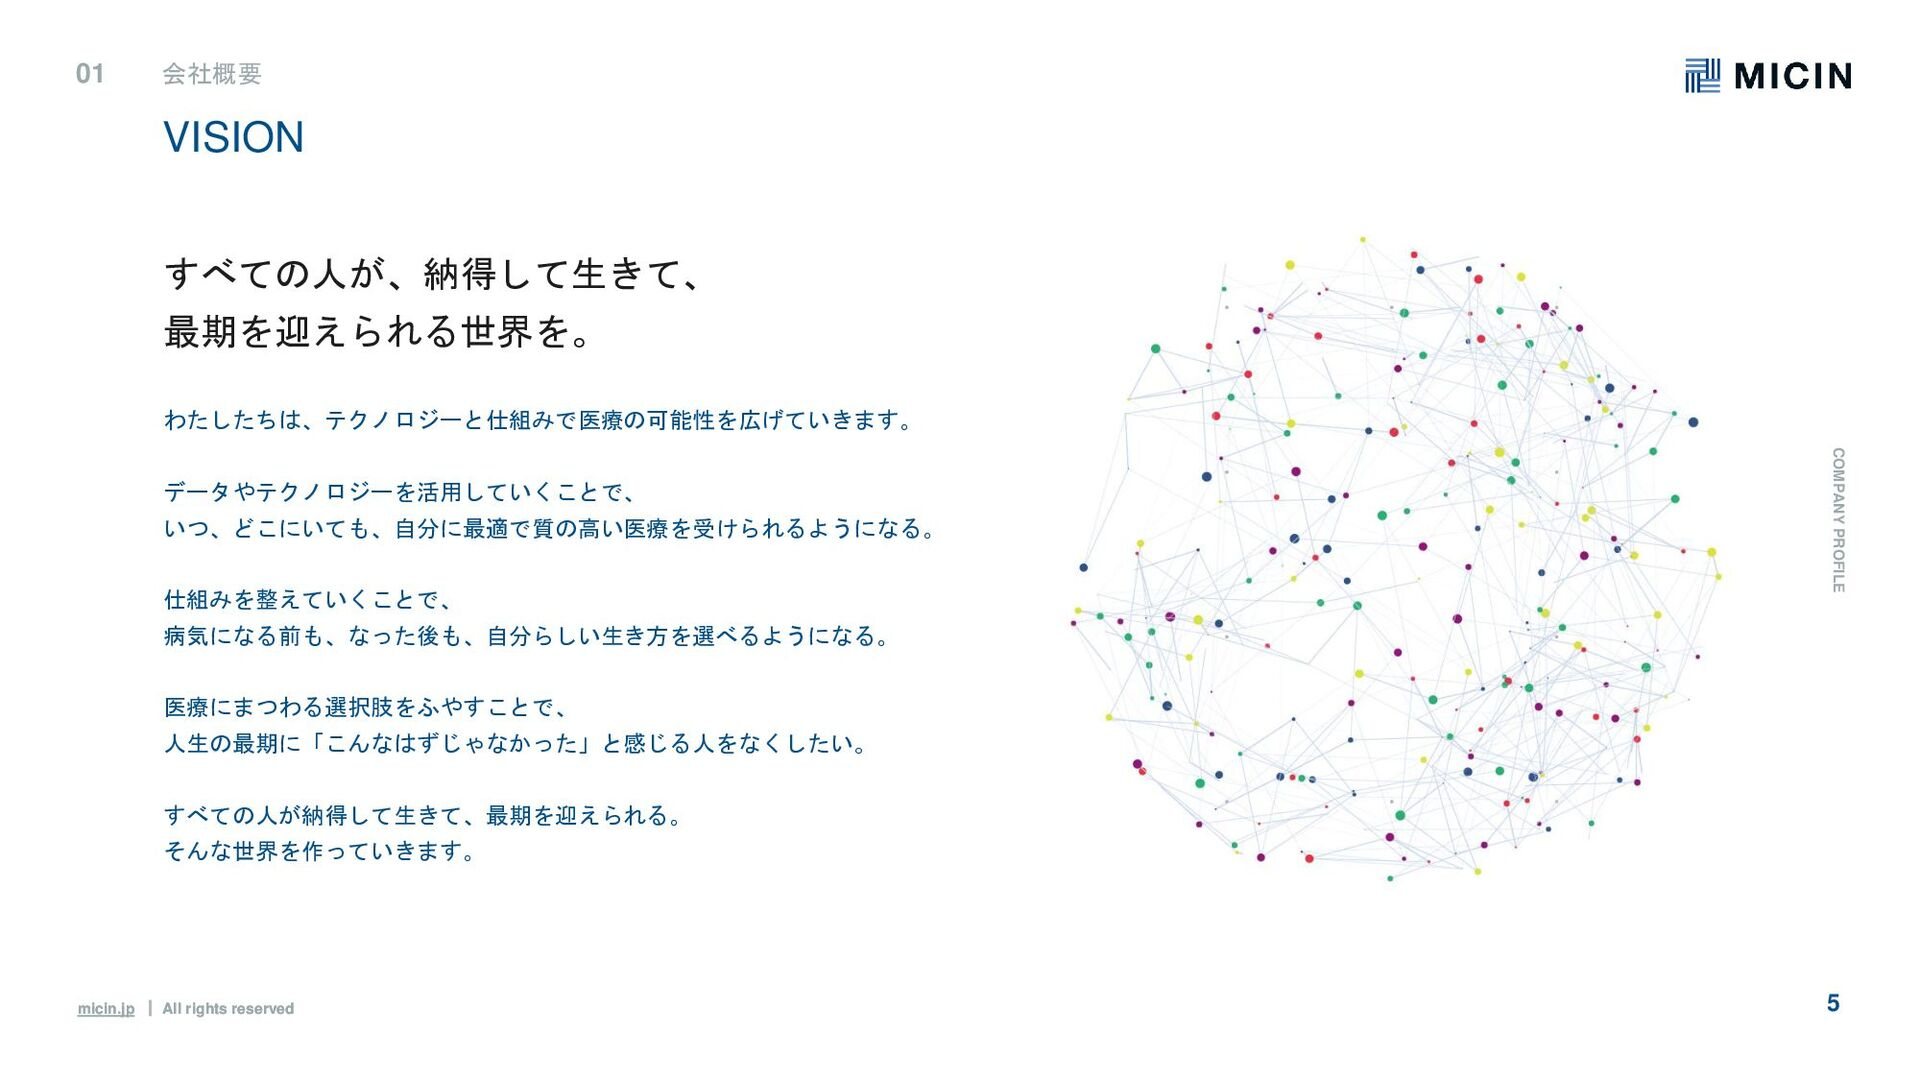 micin.jp ʛ All rights reserved 5 VISION 01 会社概要...